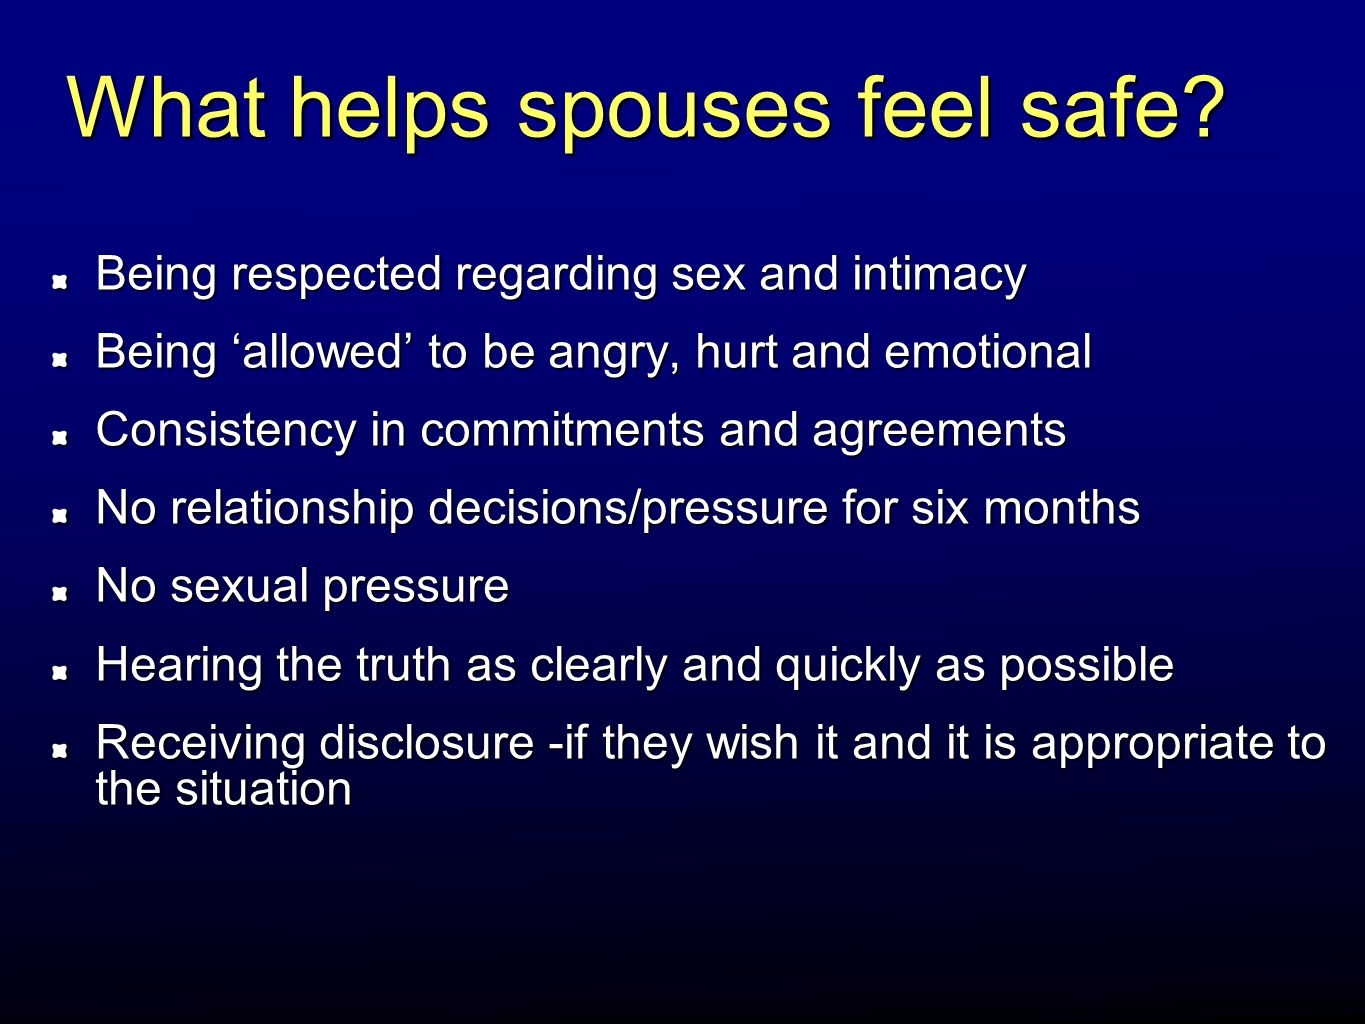 What helps spouses feel safe